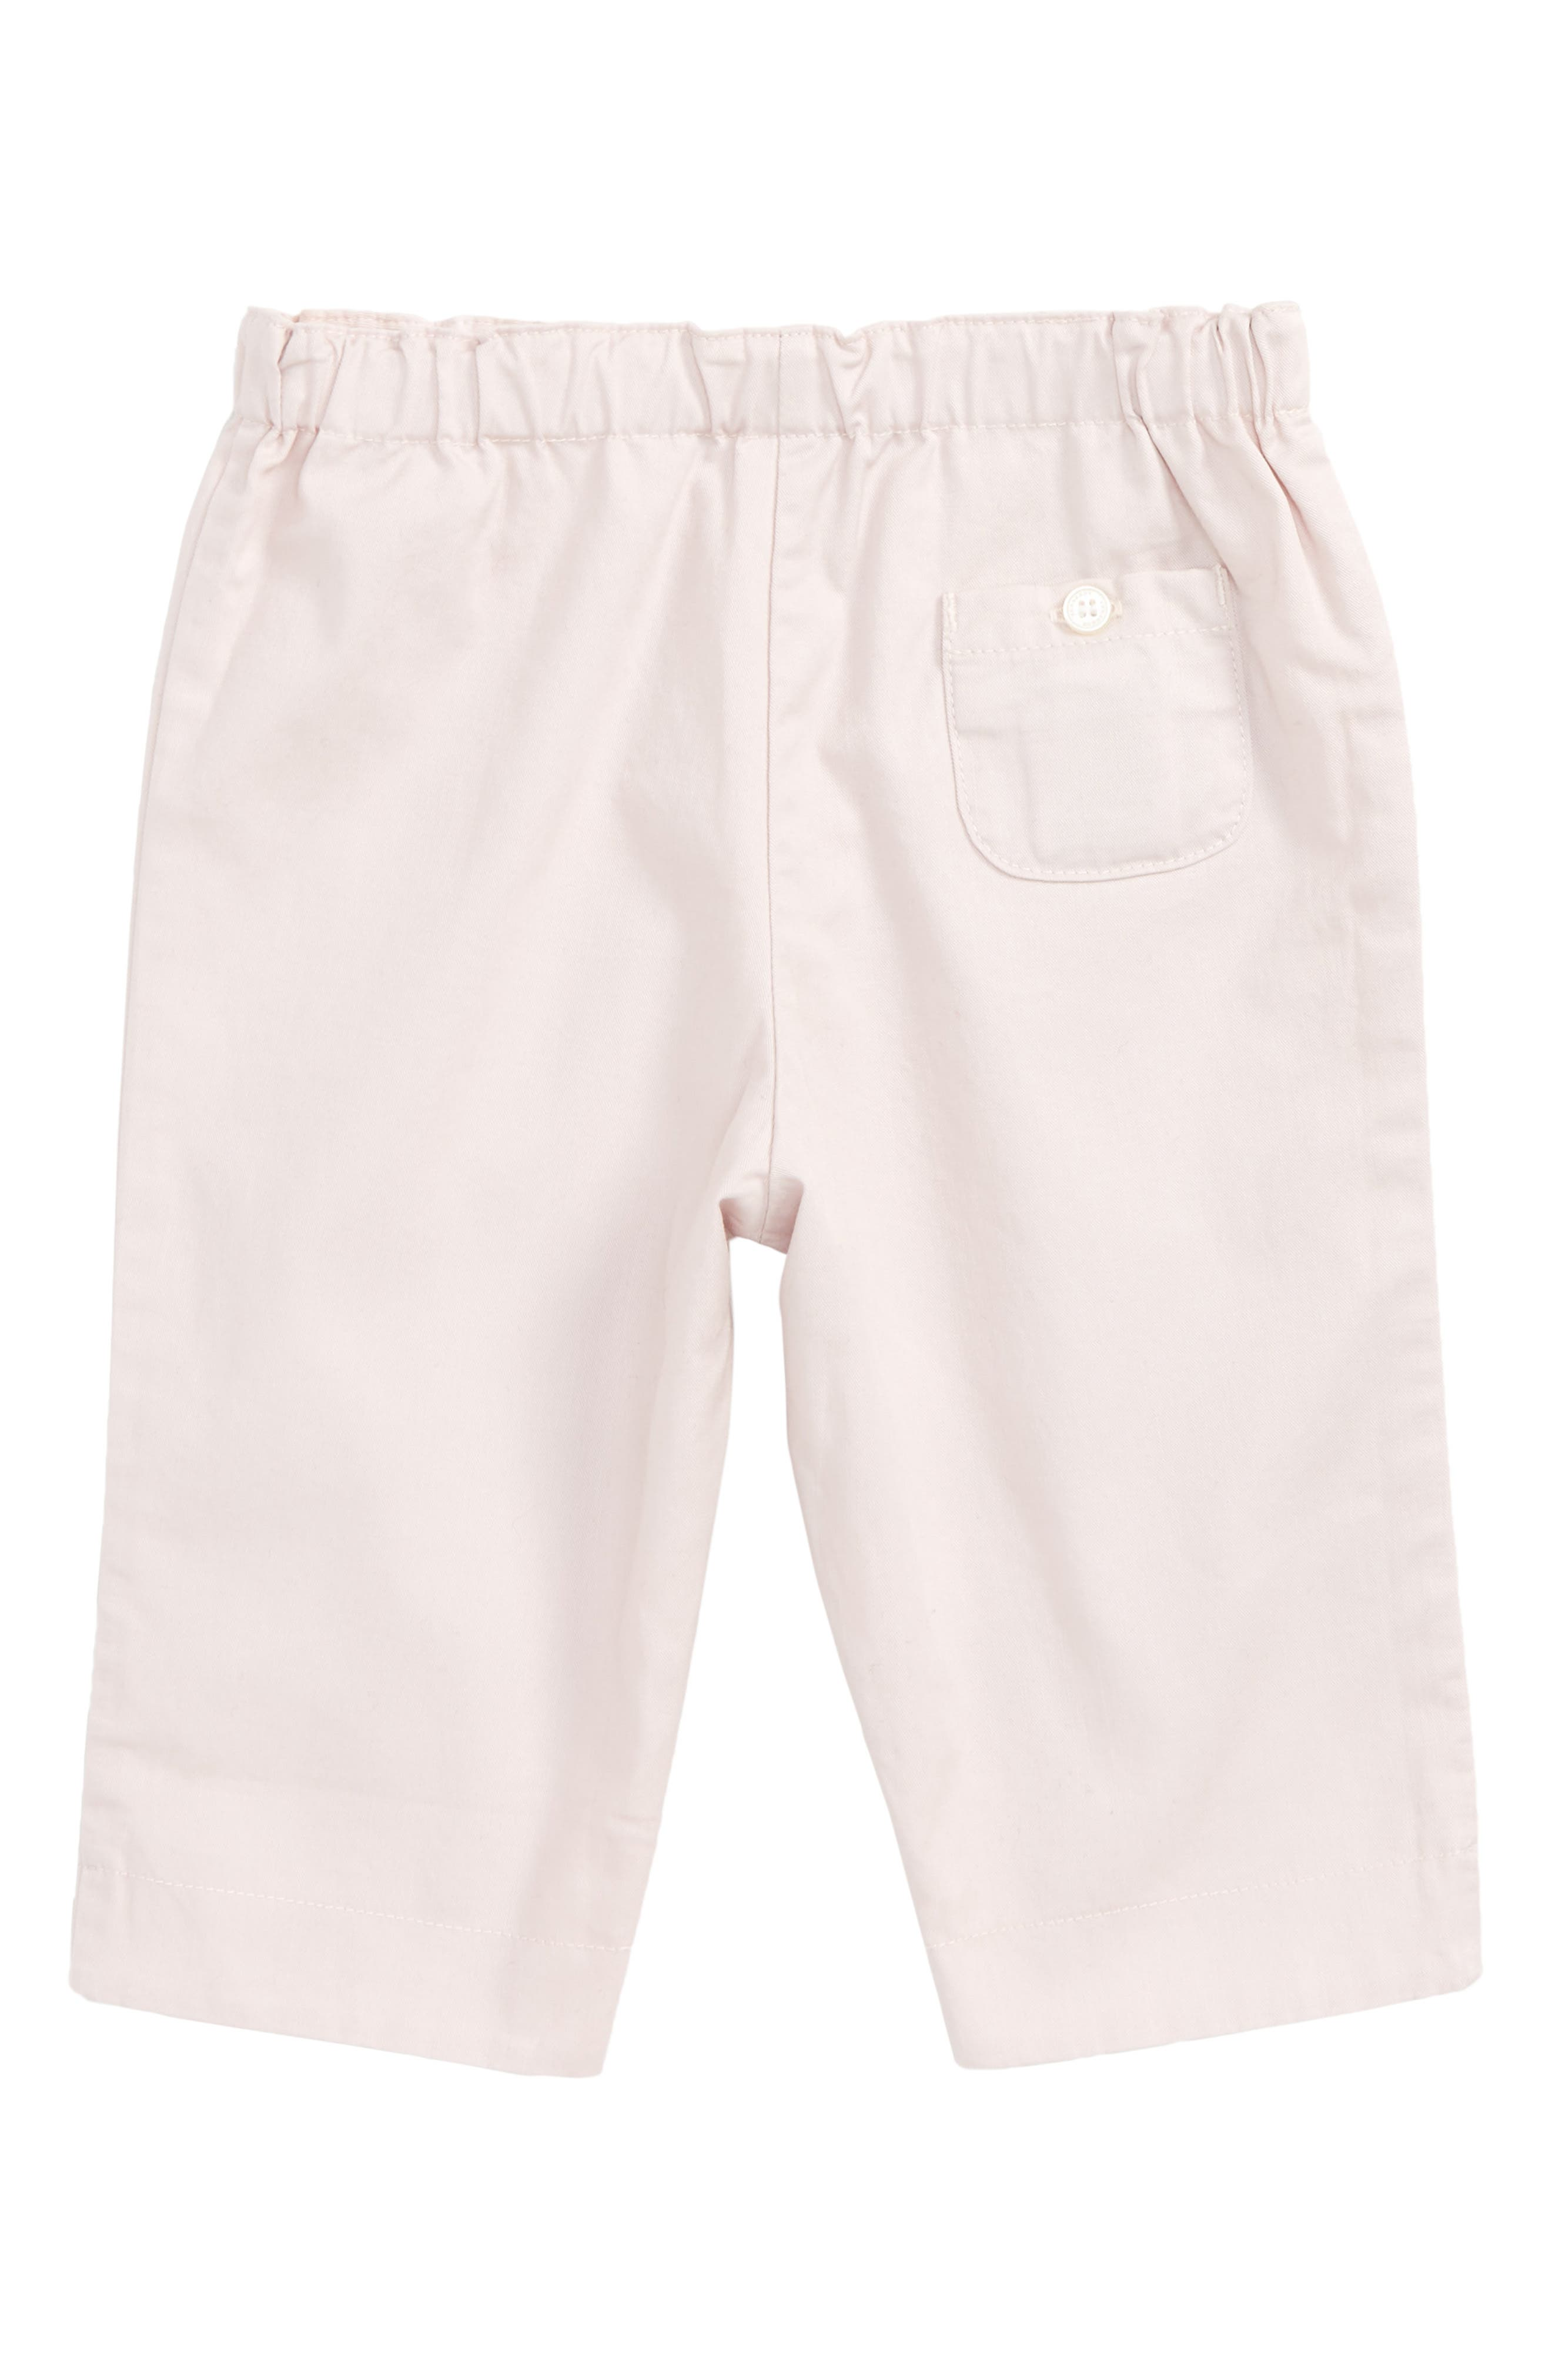 Darcy Pants,                             Alternate thumbnail 2, color,                             Light Pink